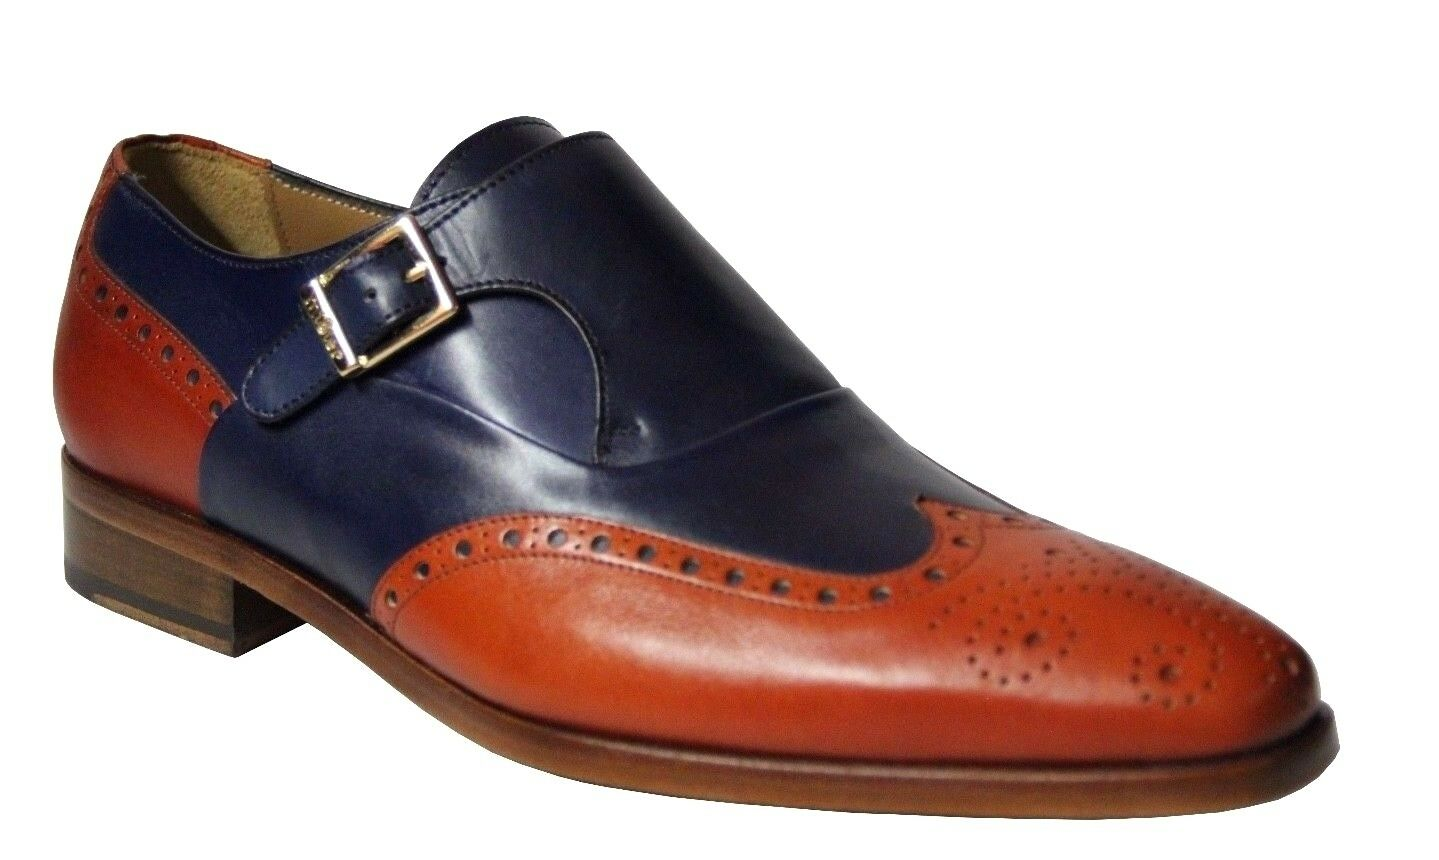 Mister Men's Single Monk Strap Navy Tan Leather Dress shoes 36873 Made In Spain